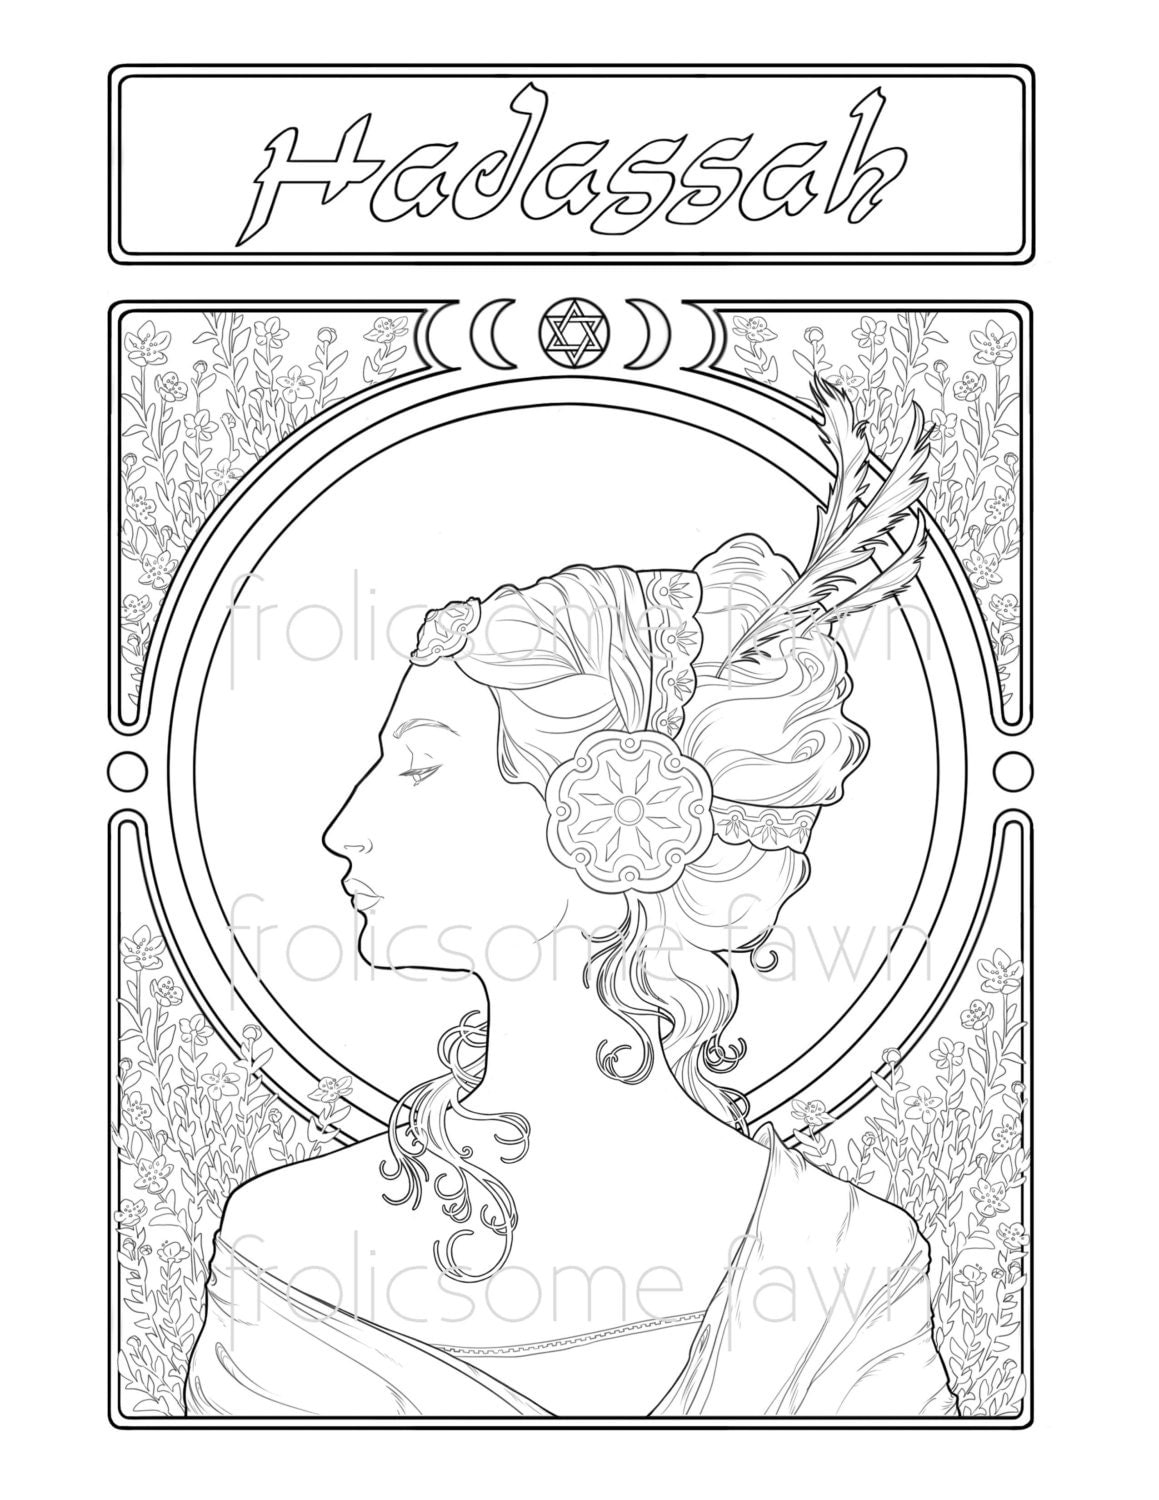 queen esther coloring page bible coloring page